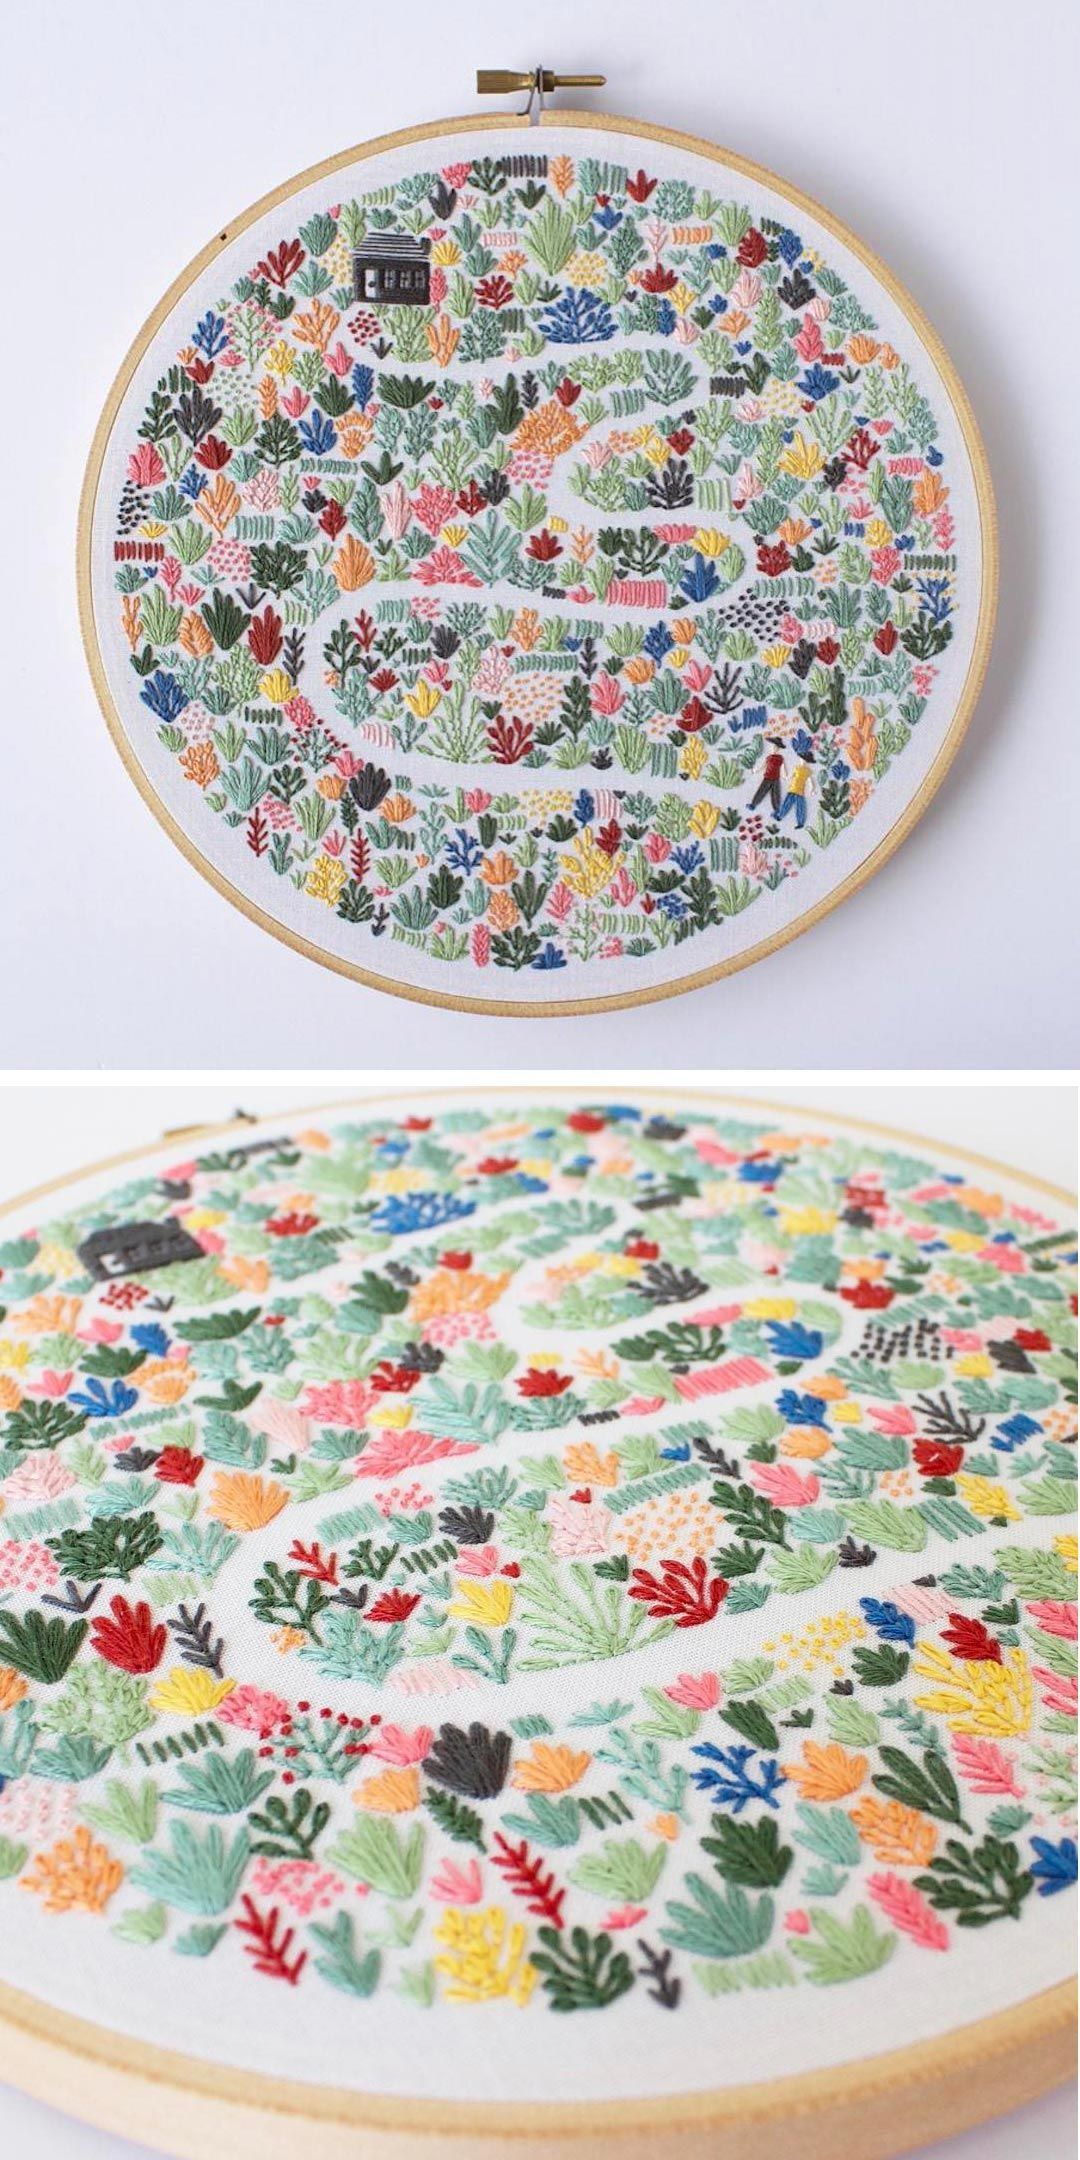 Modern Embroidery Patterns By Thread Folk And Lauren Merrick Love